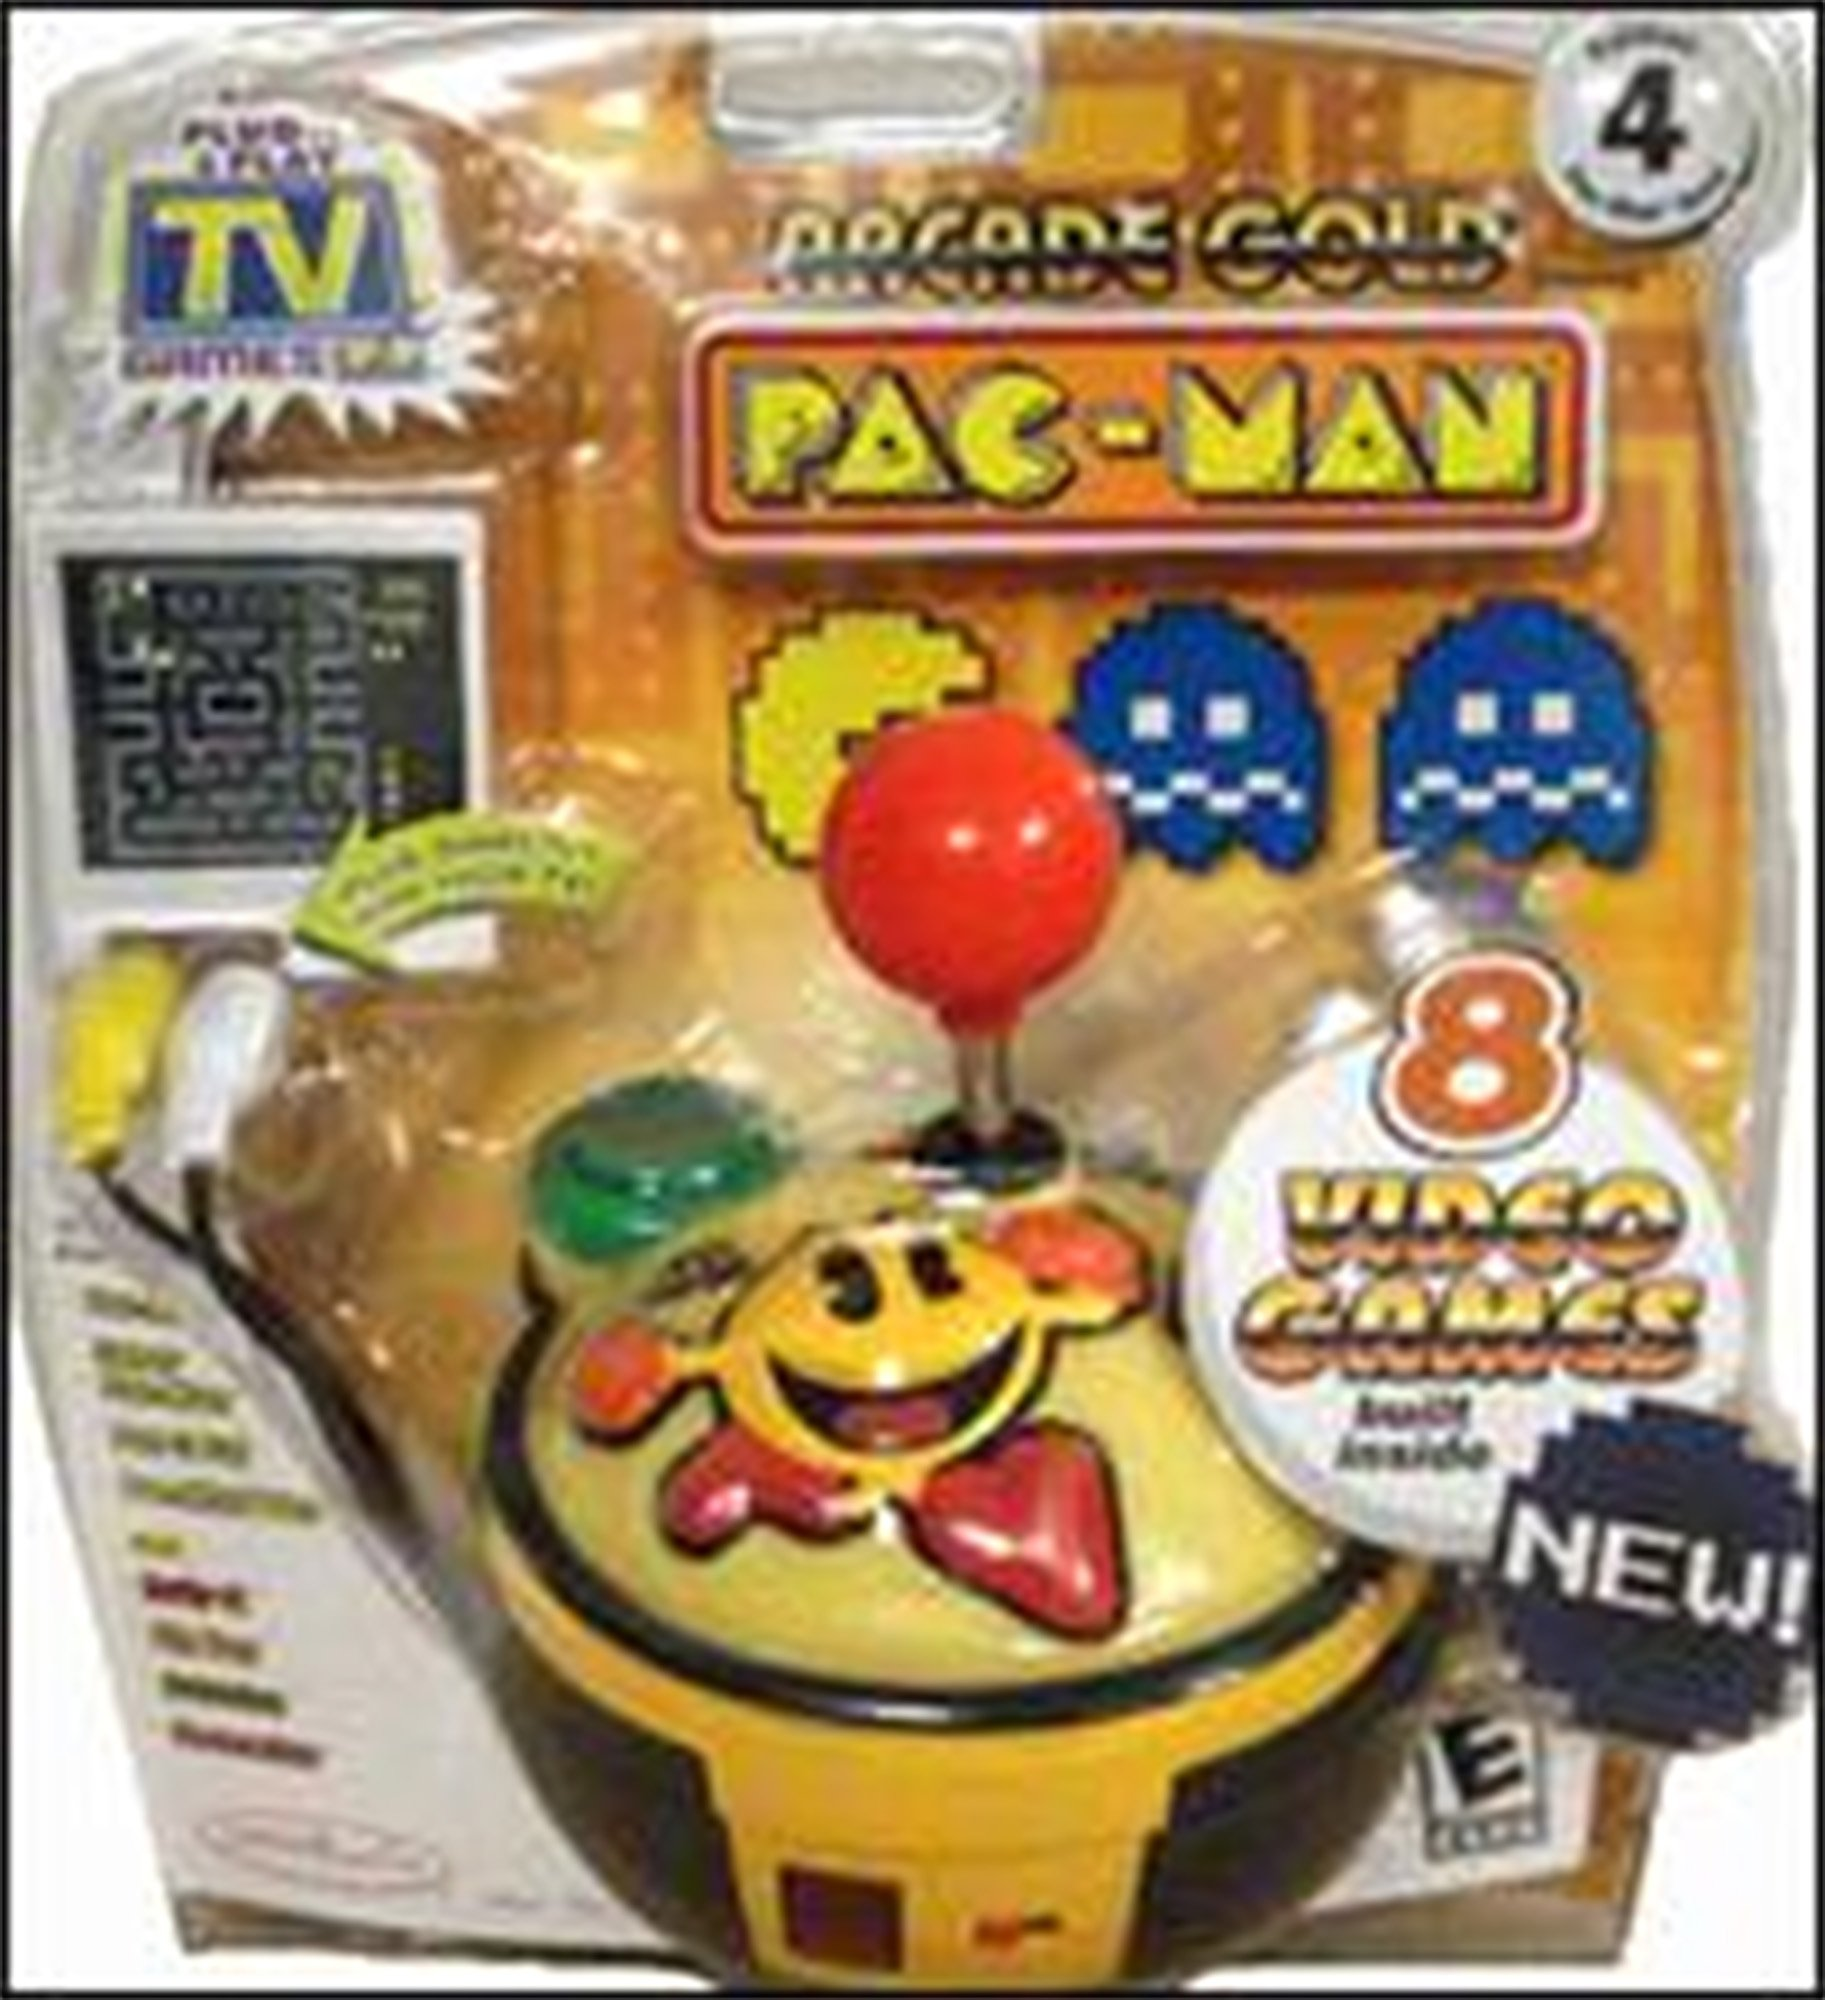 PAC-MAN Gold Edition #4 Namco Collection of 8 Classic Arcade Games - Plug it in & Play! by Namco